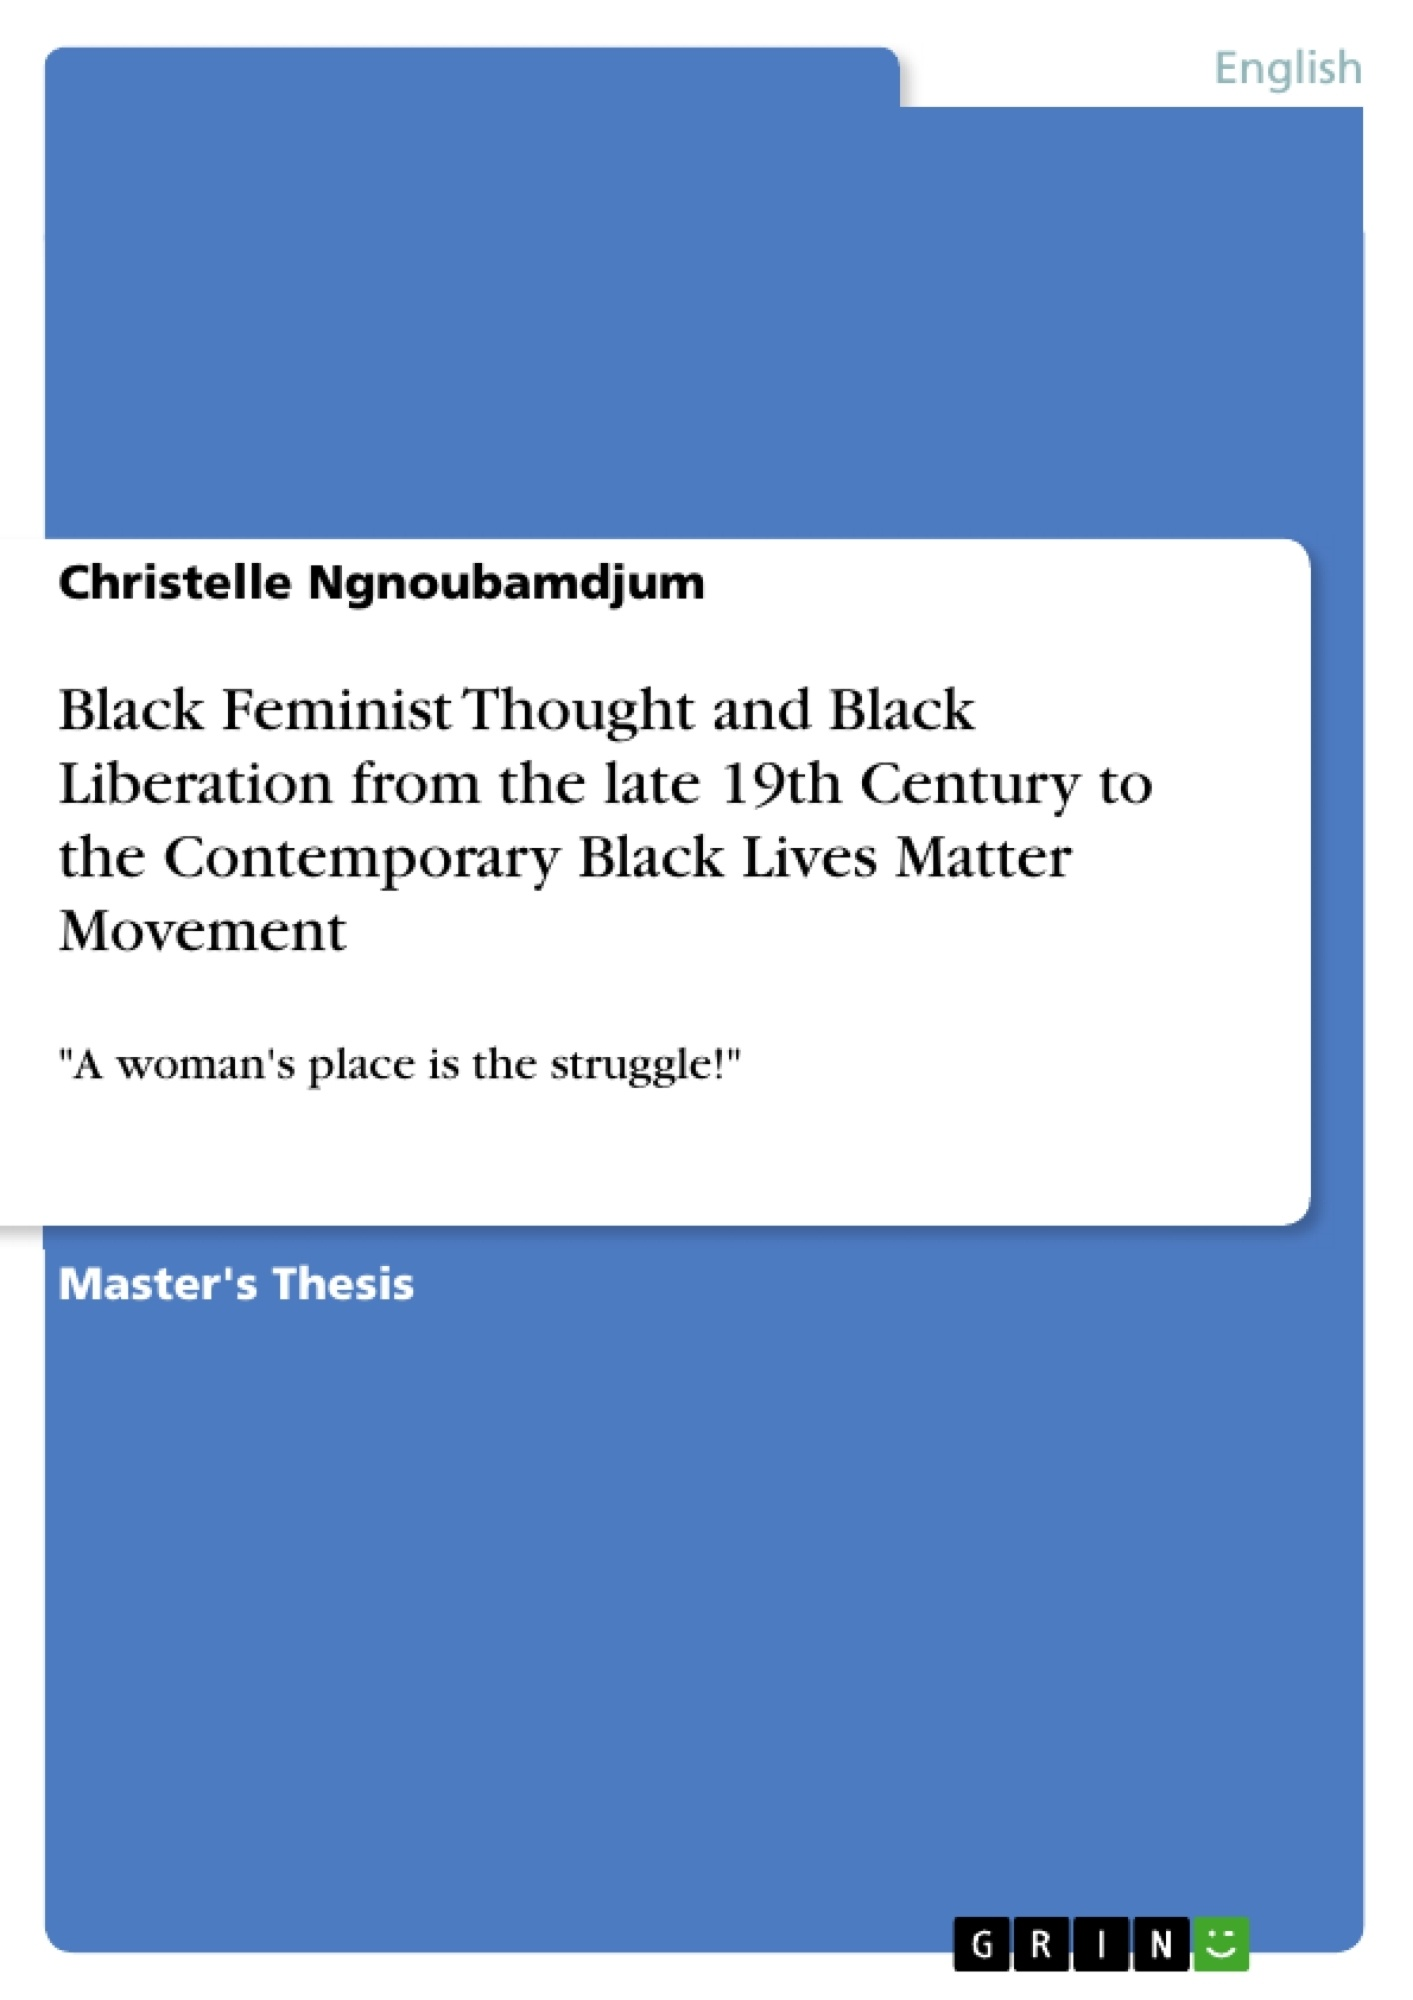 Title: Black Feminist Thought and Black Liberation from the late 19th Century to the Contemporary Black Lives Matter Movement